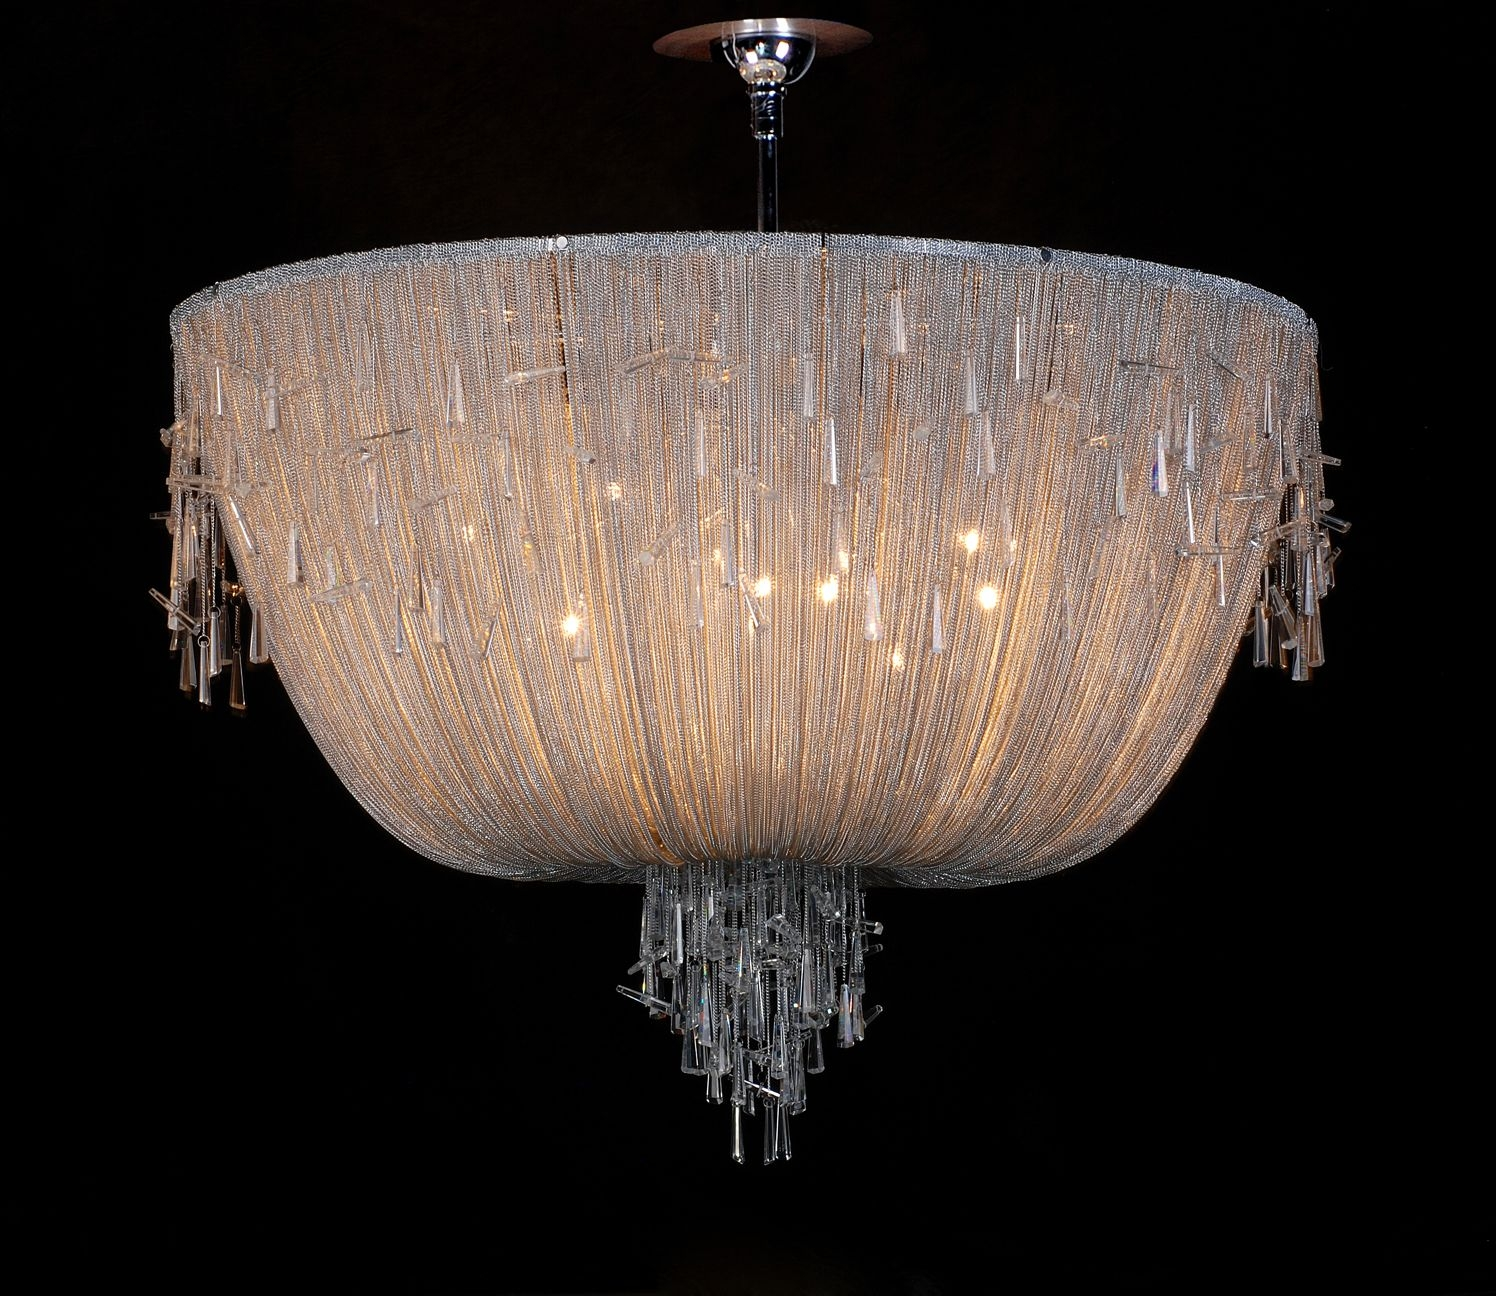 Home Bespoke Italian Chandeliers Hand Blown Glass Lighting Intended For Modern Italian Chandeliers (Image 3 of 15)